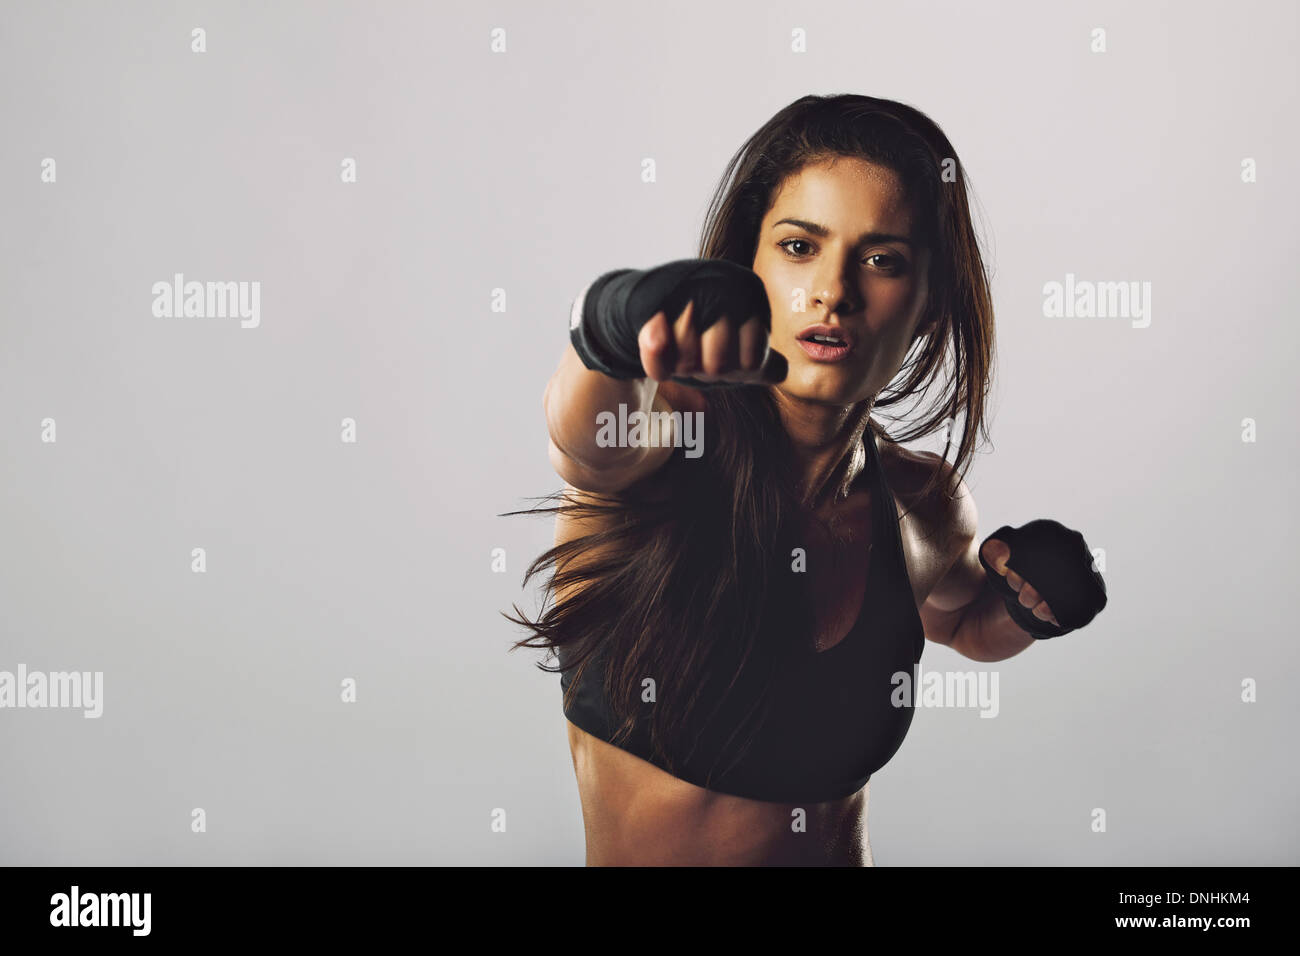 Portrait of hispanic female practicing boxing looking at camera against grey background with copyspace. - Stock Image